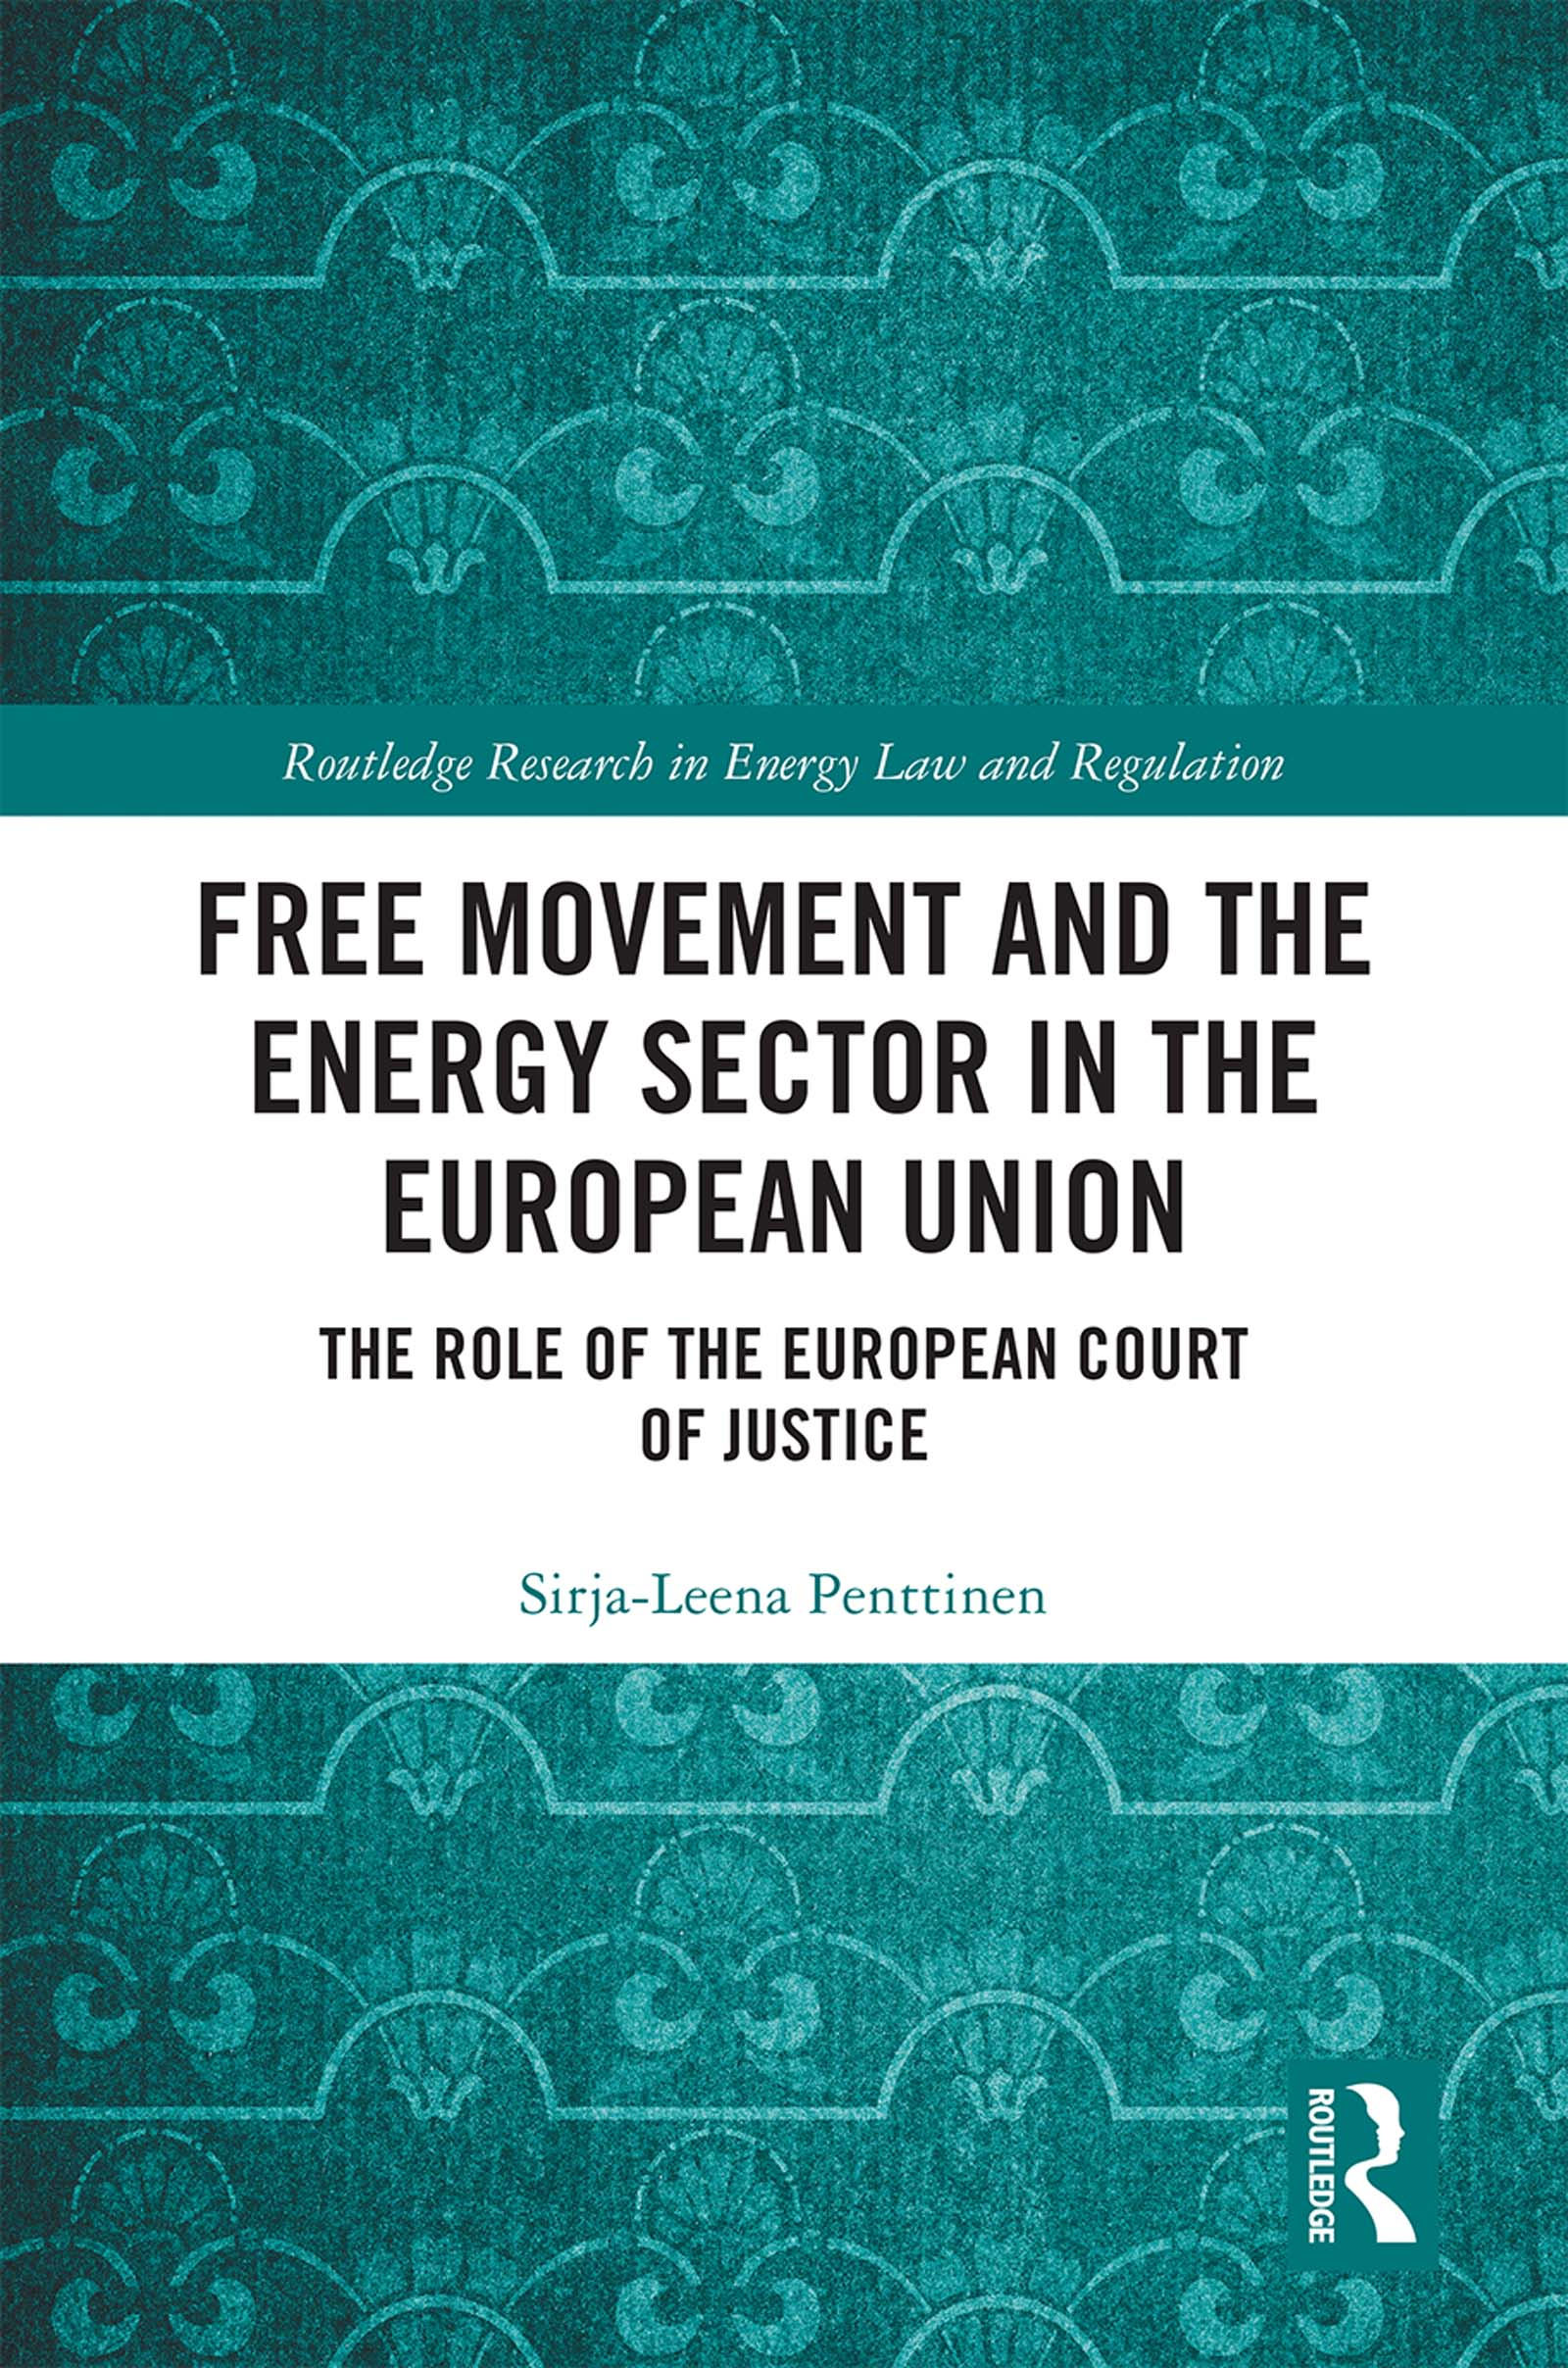 Free Movement and the Energy Sector in the European Union